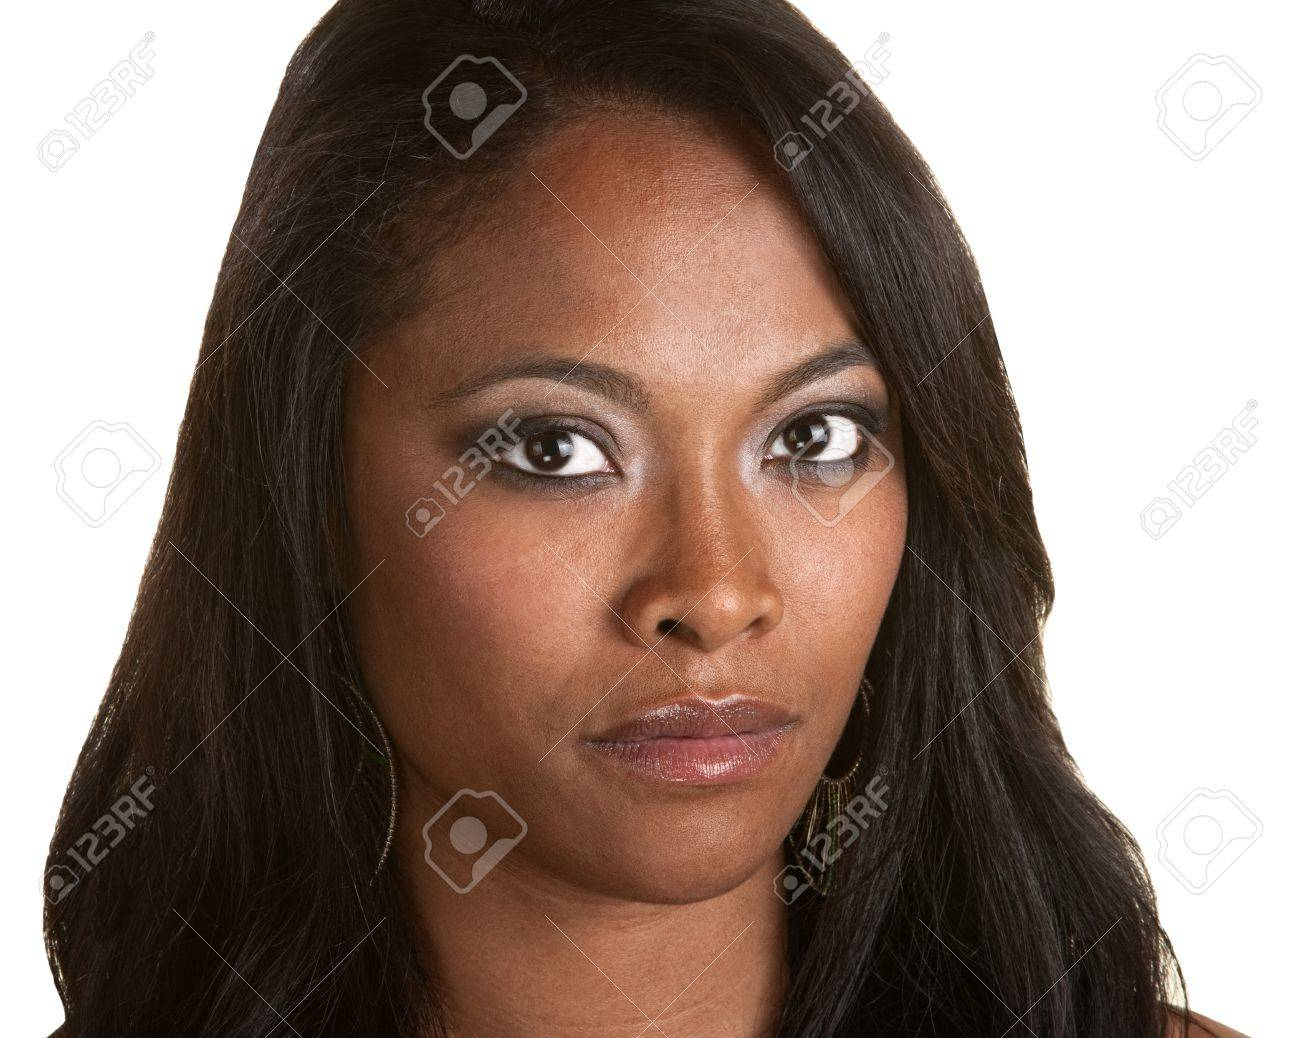 Serious Black woman with long hair on isolated background Stock Photo - 14825333